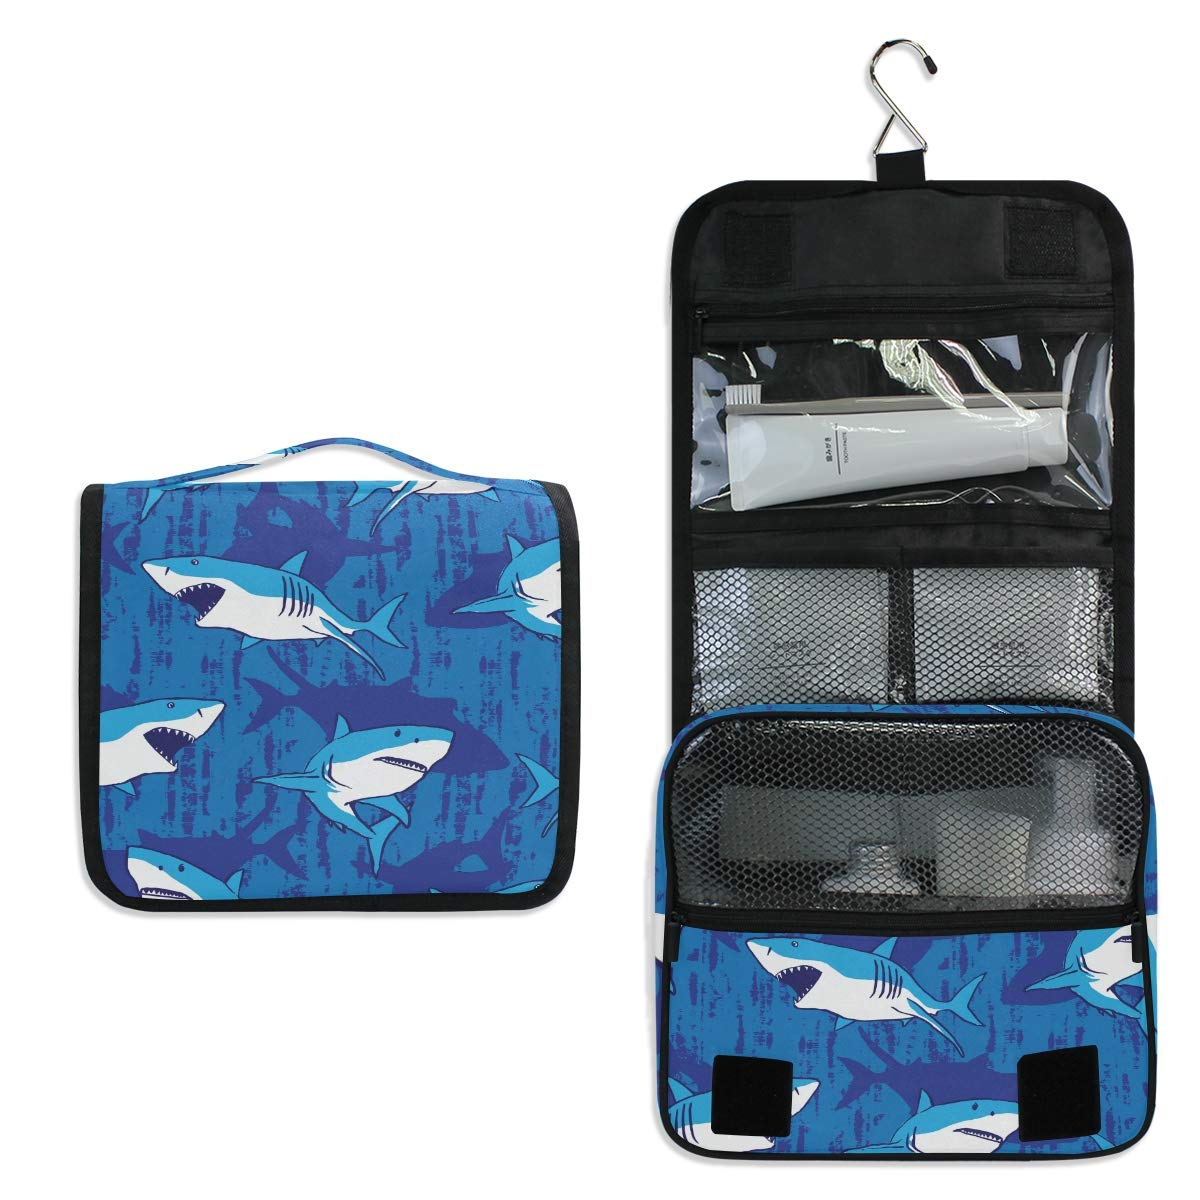 Hanging Travel Toiletry Bag - Shark Cosmetic Makeup Bag Pouch Organizer for Women and Girls Waterproof (shark)